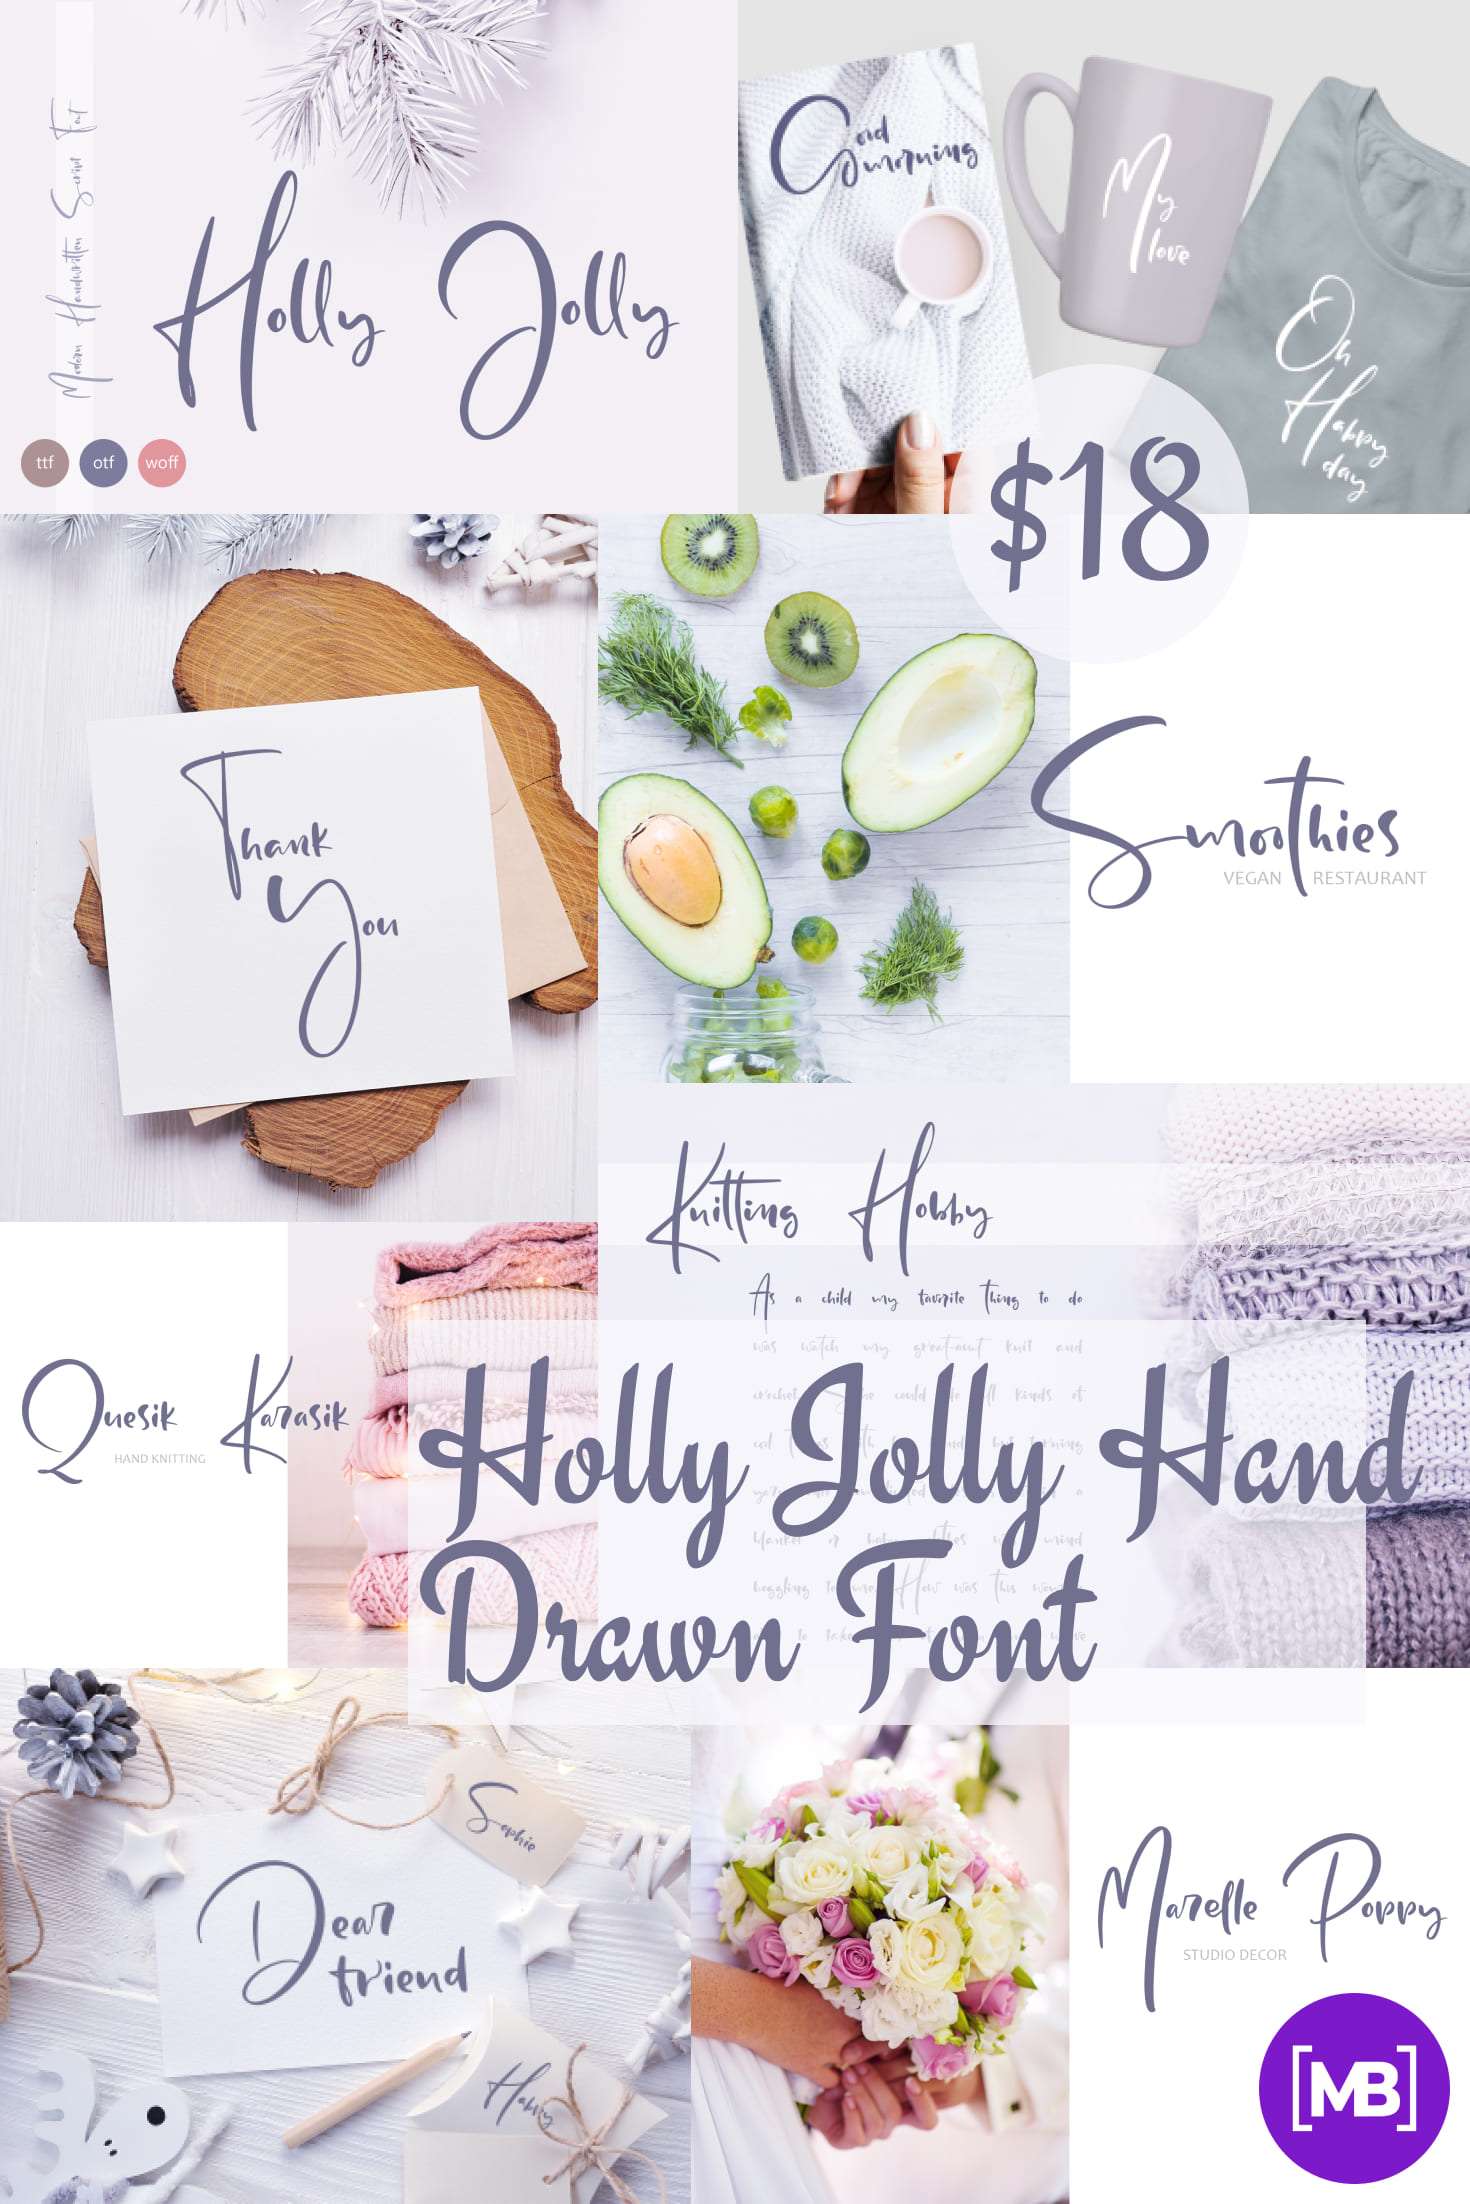 Pinterest Image: Holly Jolly Hand Drawn Font - $18.